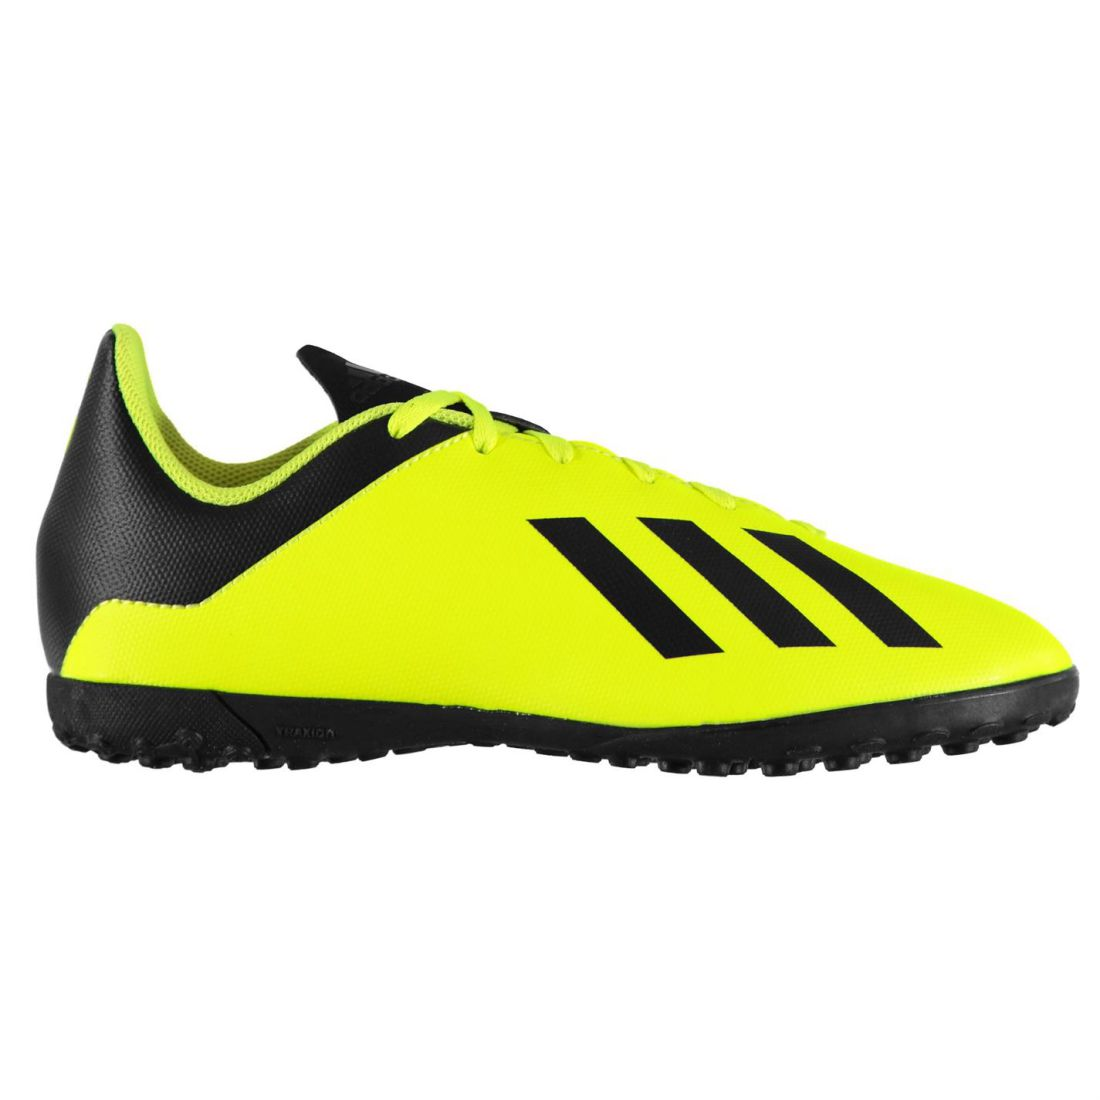 c30f8fcc10d9 adidas Kids Boys X Tango 18.4 Junior Astro Turf Trainers Football Boots  Lace Up